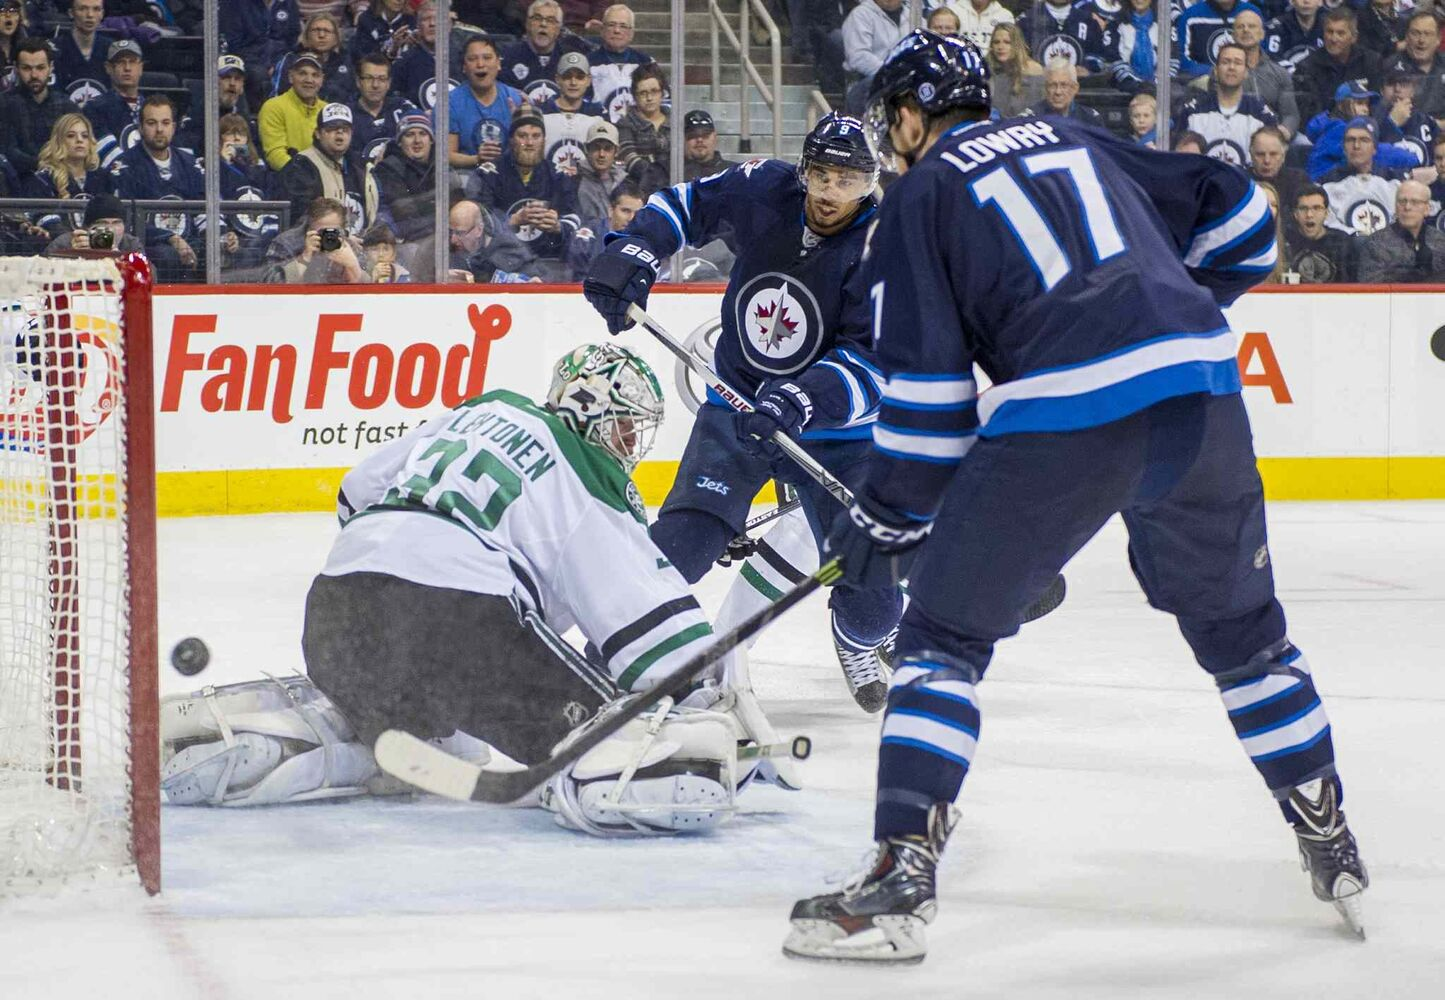 Dallas Stars goaltender Kari Lehtonen (#32) stops the shot as Winnipeg Jets Evander Kane (#9) and Adam Lowry (#17) look on during second period. (David Lipnowski / Winnipeg Free Press)